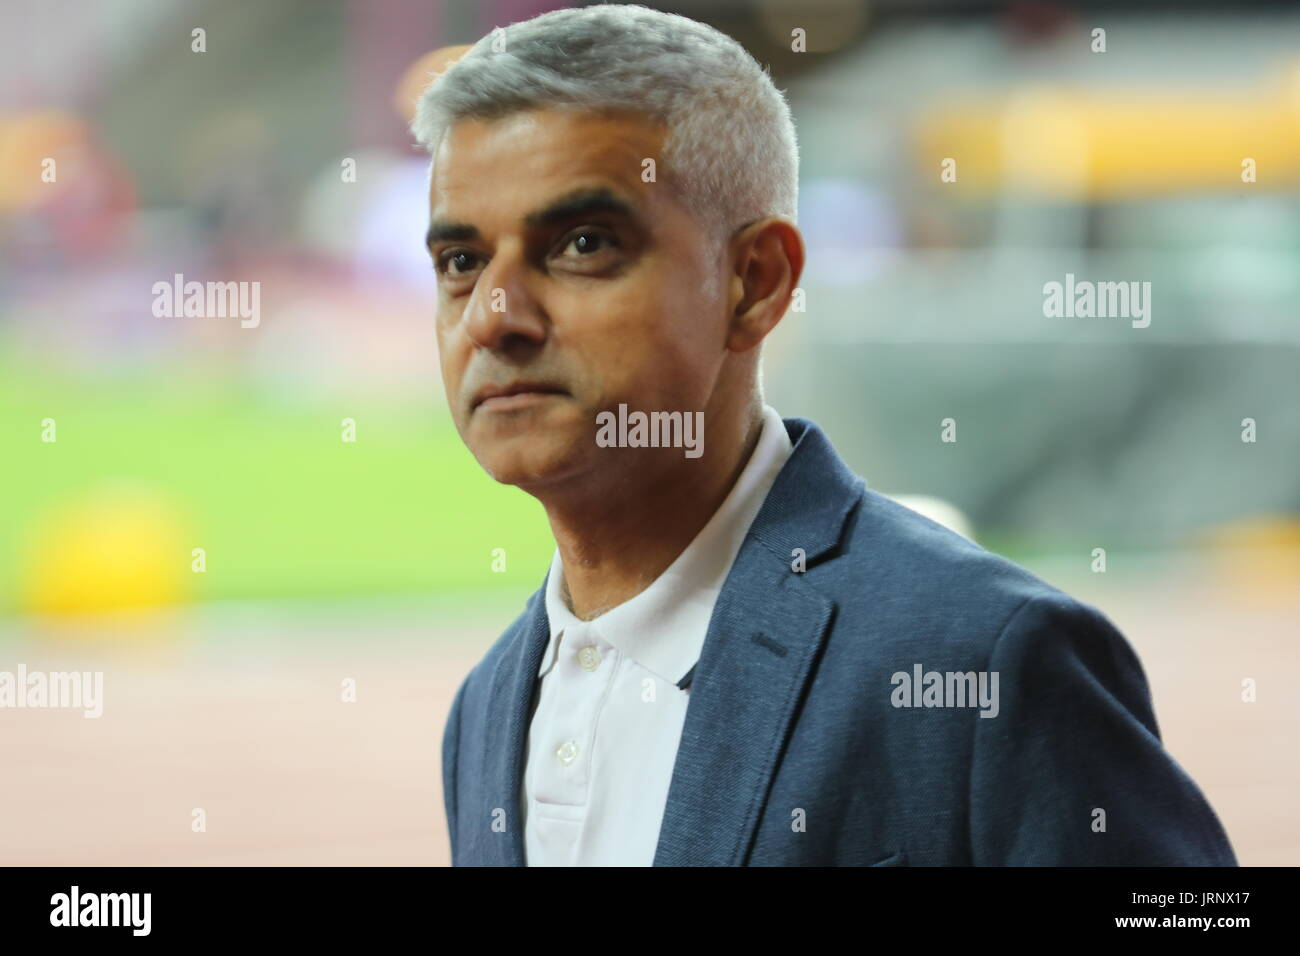 London, UK, UK. 5th Aug, 2017. Mayor of London SADIQ Khan leaves at end of the second day of the IAAF World Championships in London. Credit: Scott Mc Kiernan/ZUMA Wire/Alamy Live News - Stock Image